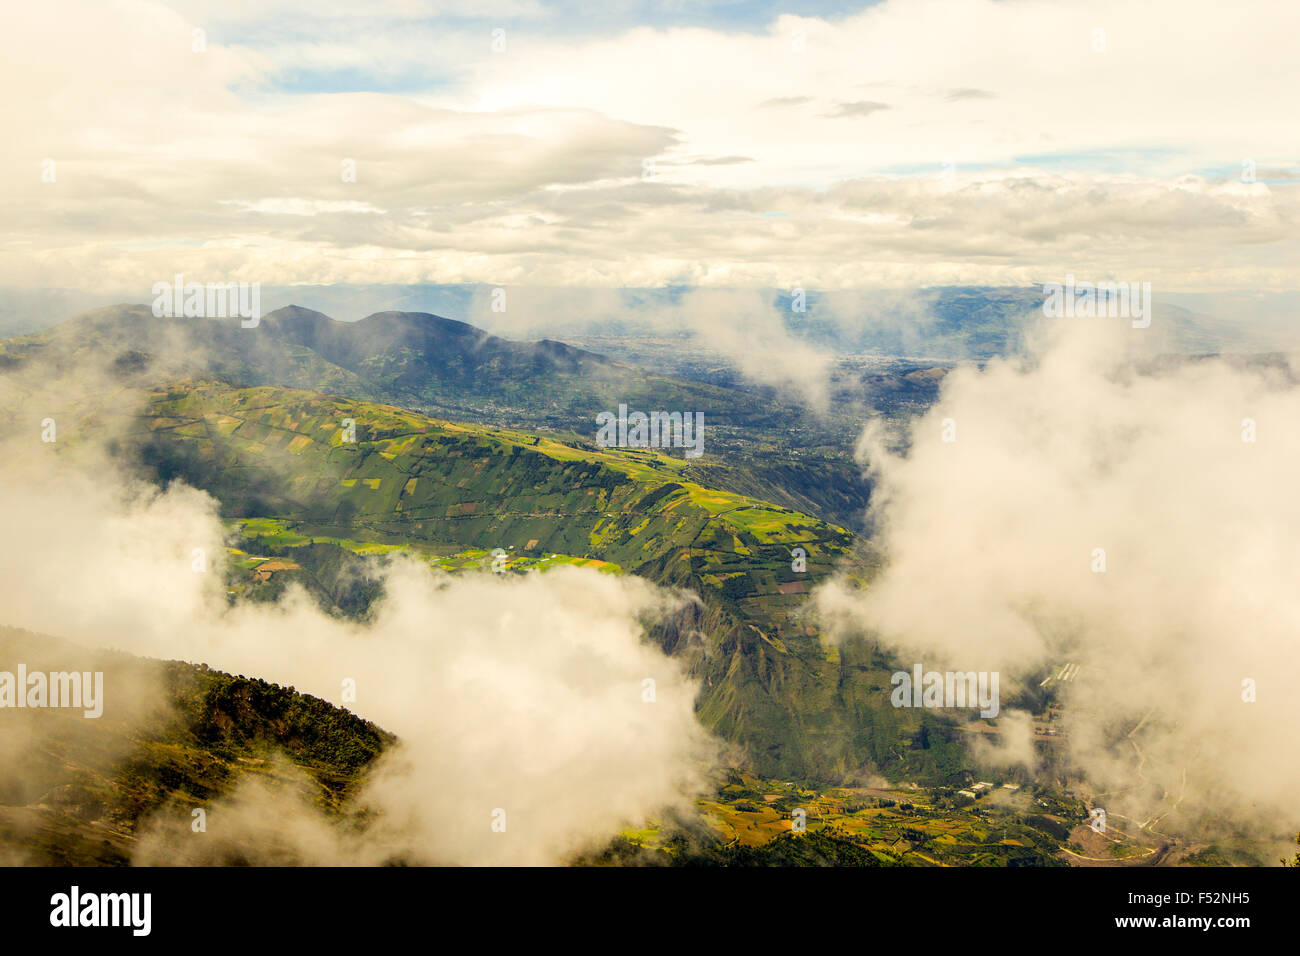 Tungurahua Province In Ecuador View From Top Of Volcano On A Cloudy Day - Stock Image